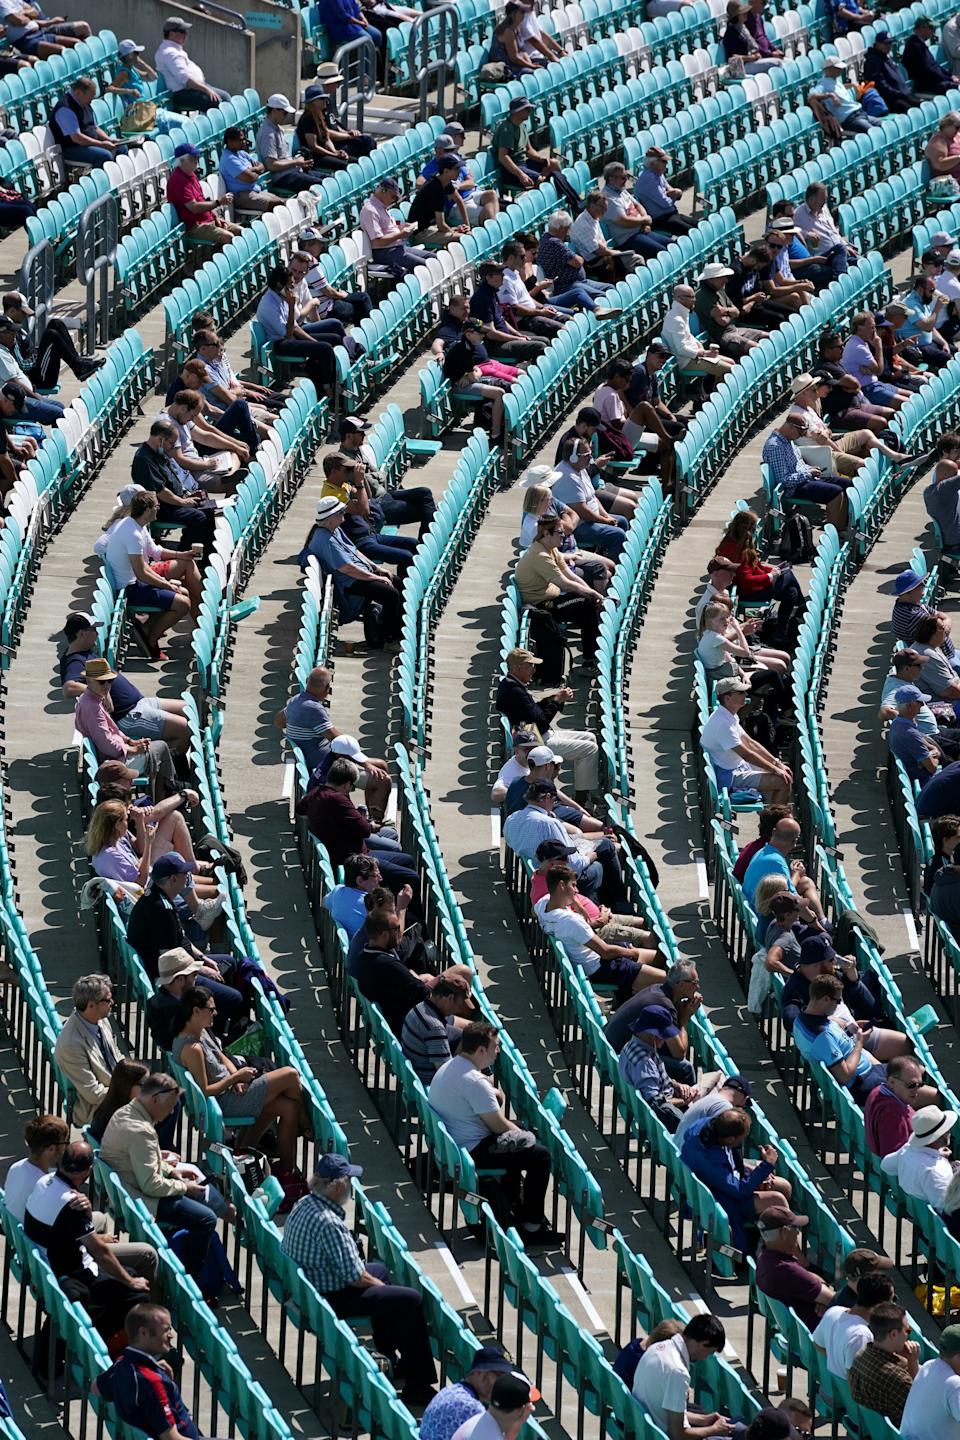 Seats were left empty to keep distance between spectators. (PA)